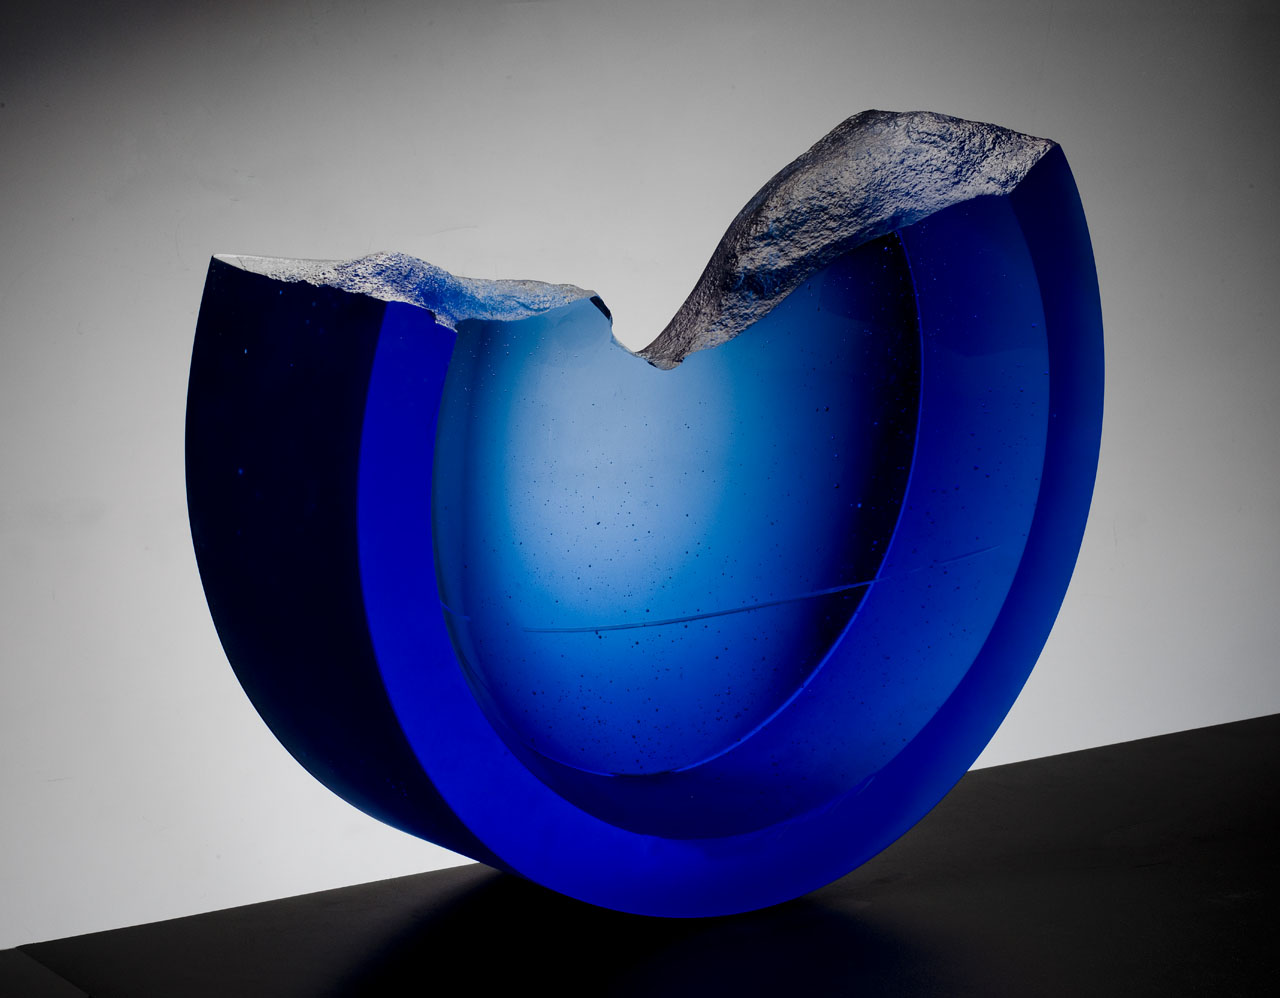 landscape-melted-glass-37x48x14cm-2013-3-700-eur